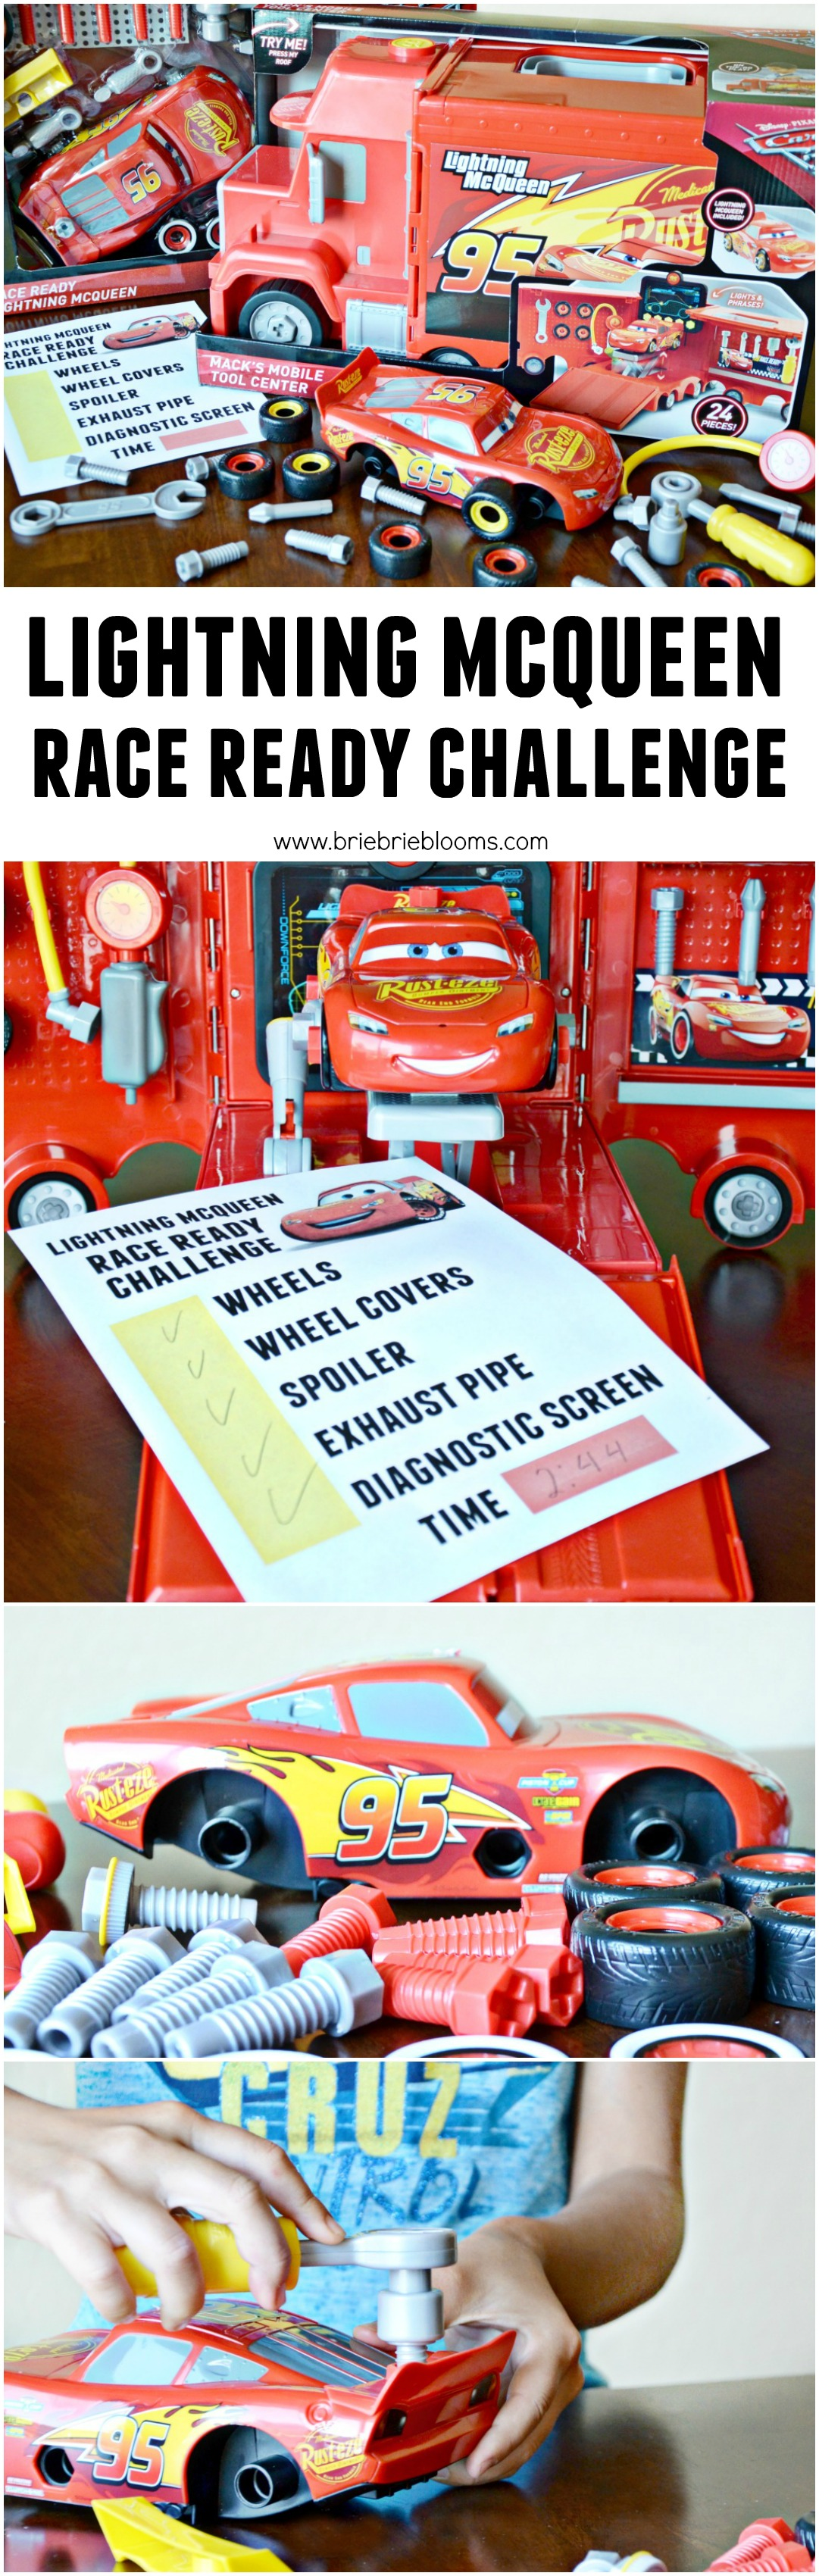 hight resolution of see how quickly you can get lightning mcqueen race ready with a free printable lightning mcqueen